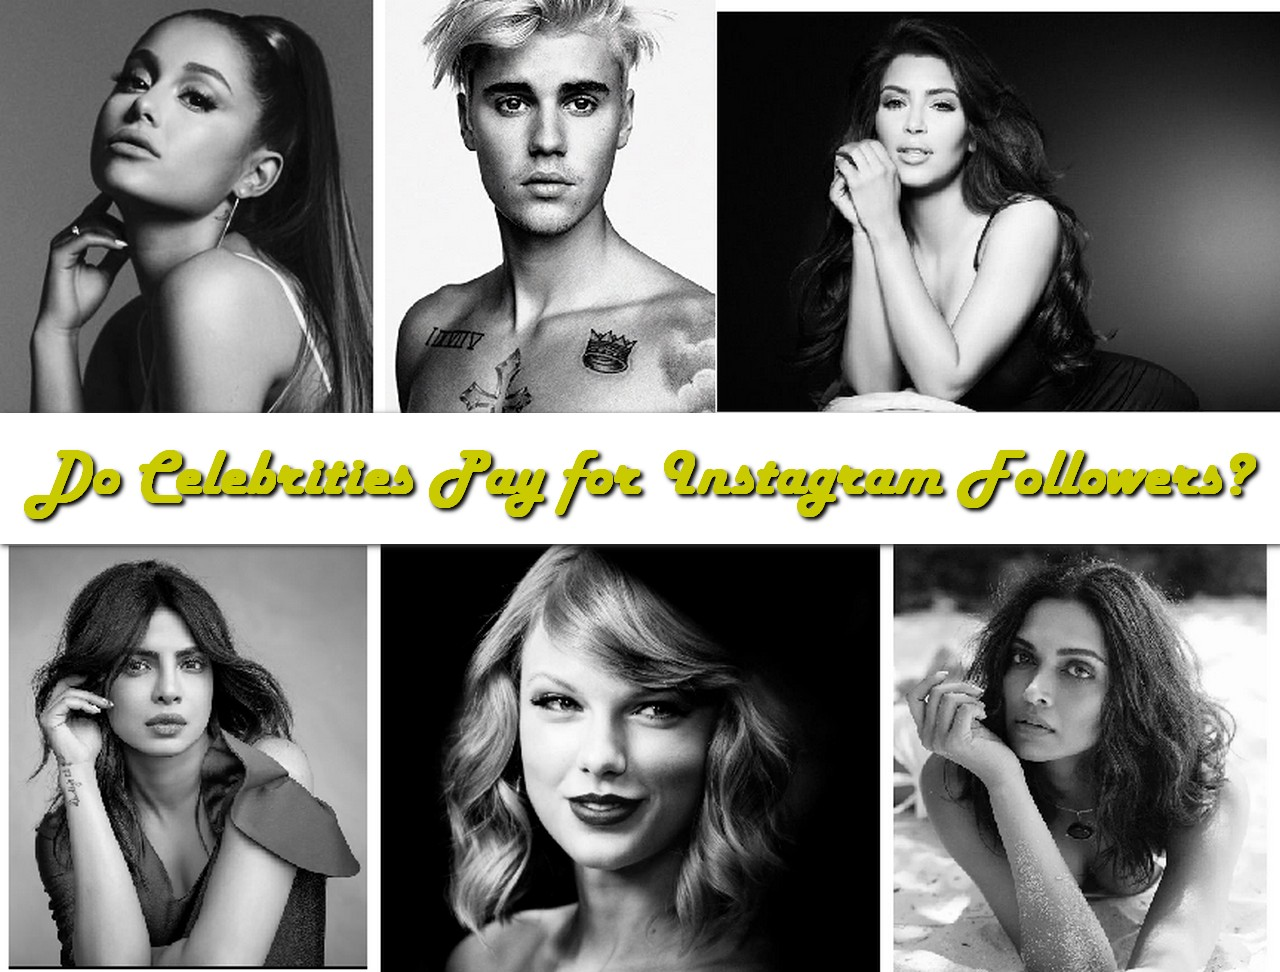 Do Celebrities Pay for Instagram Followers?